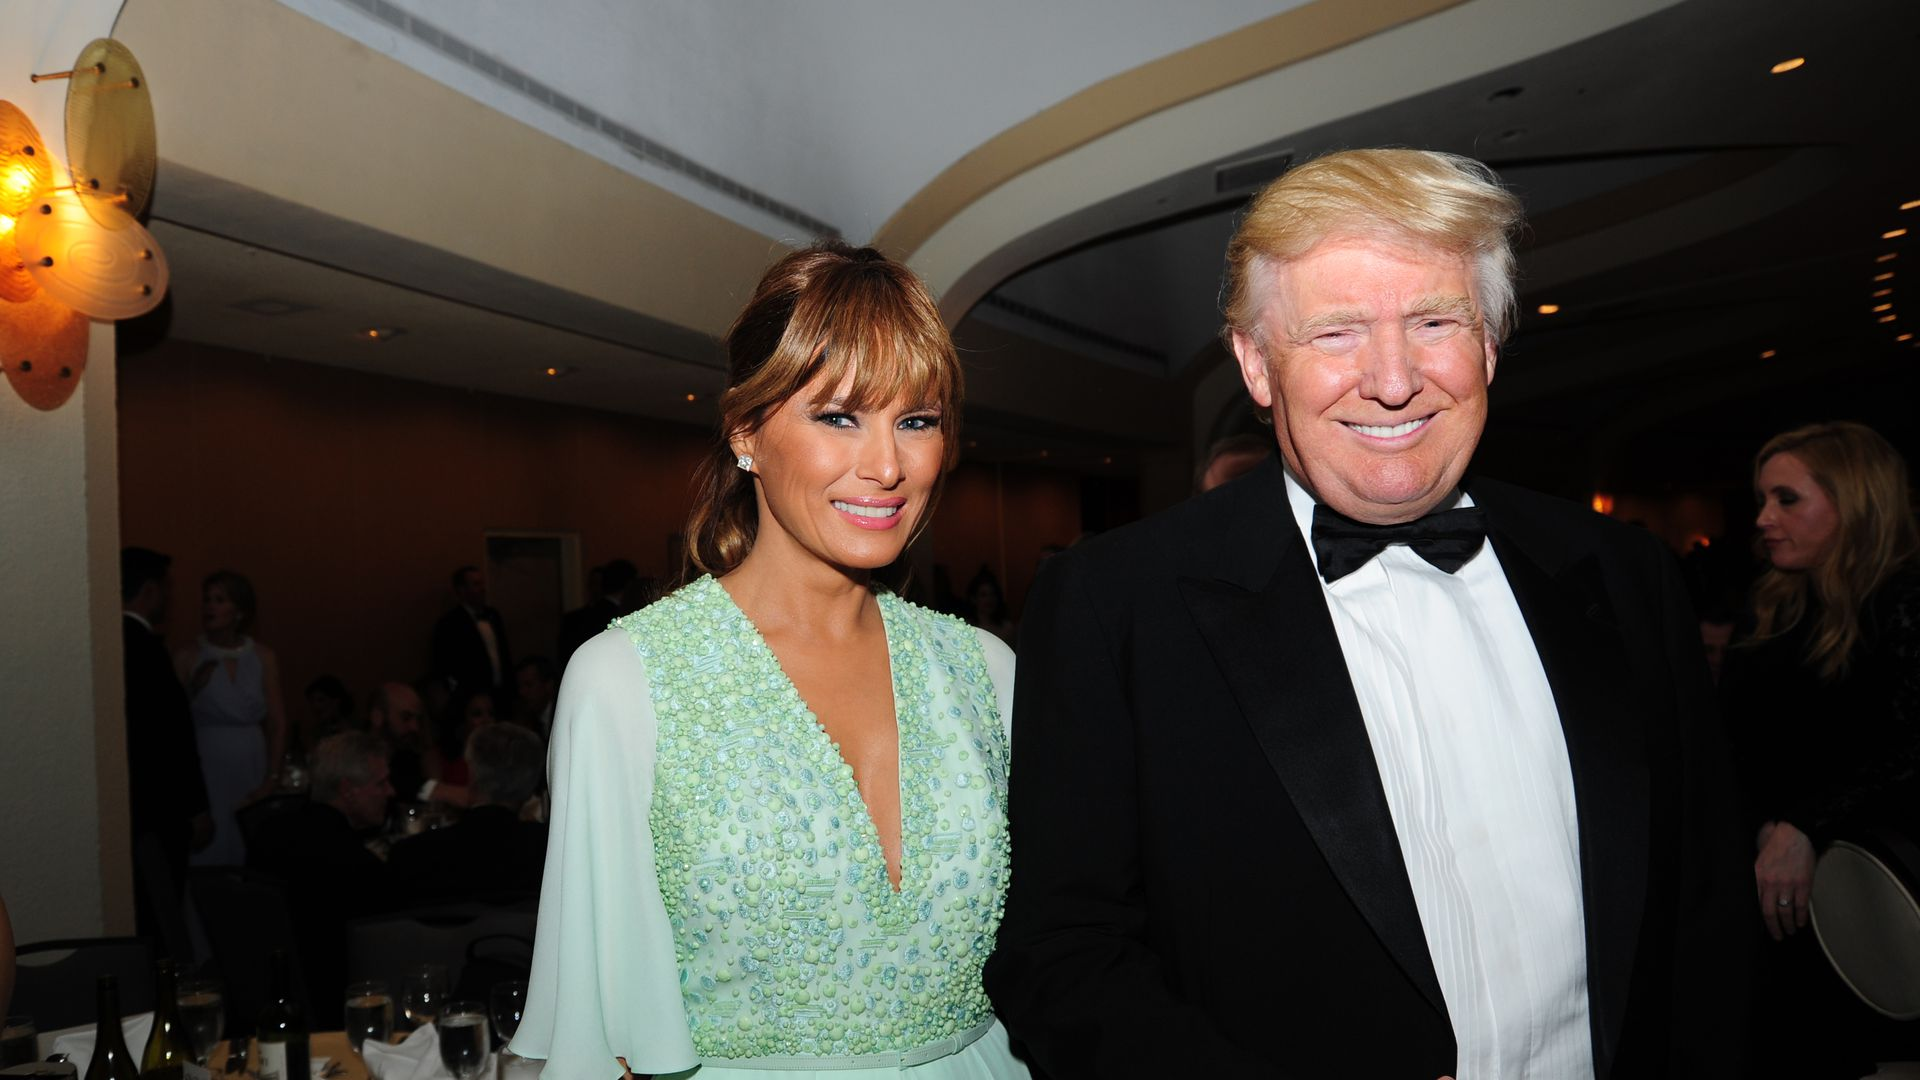 Trump and Melania